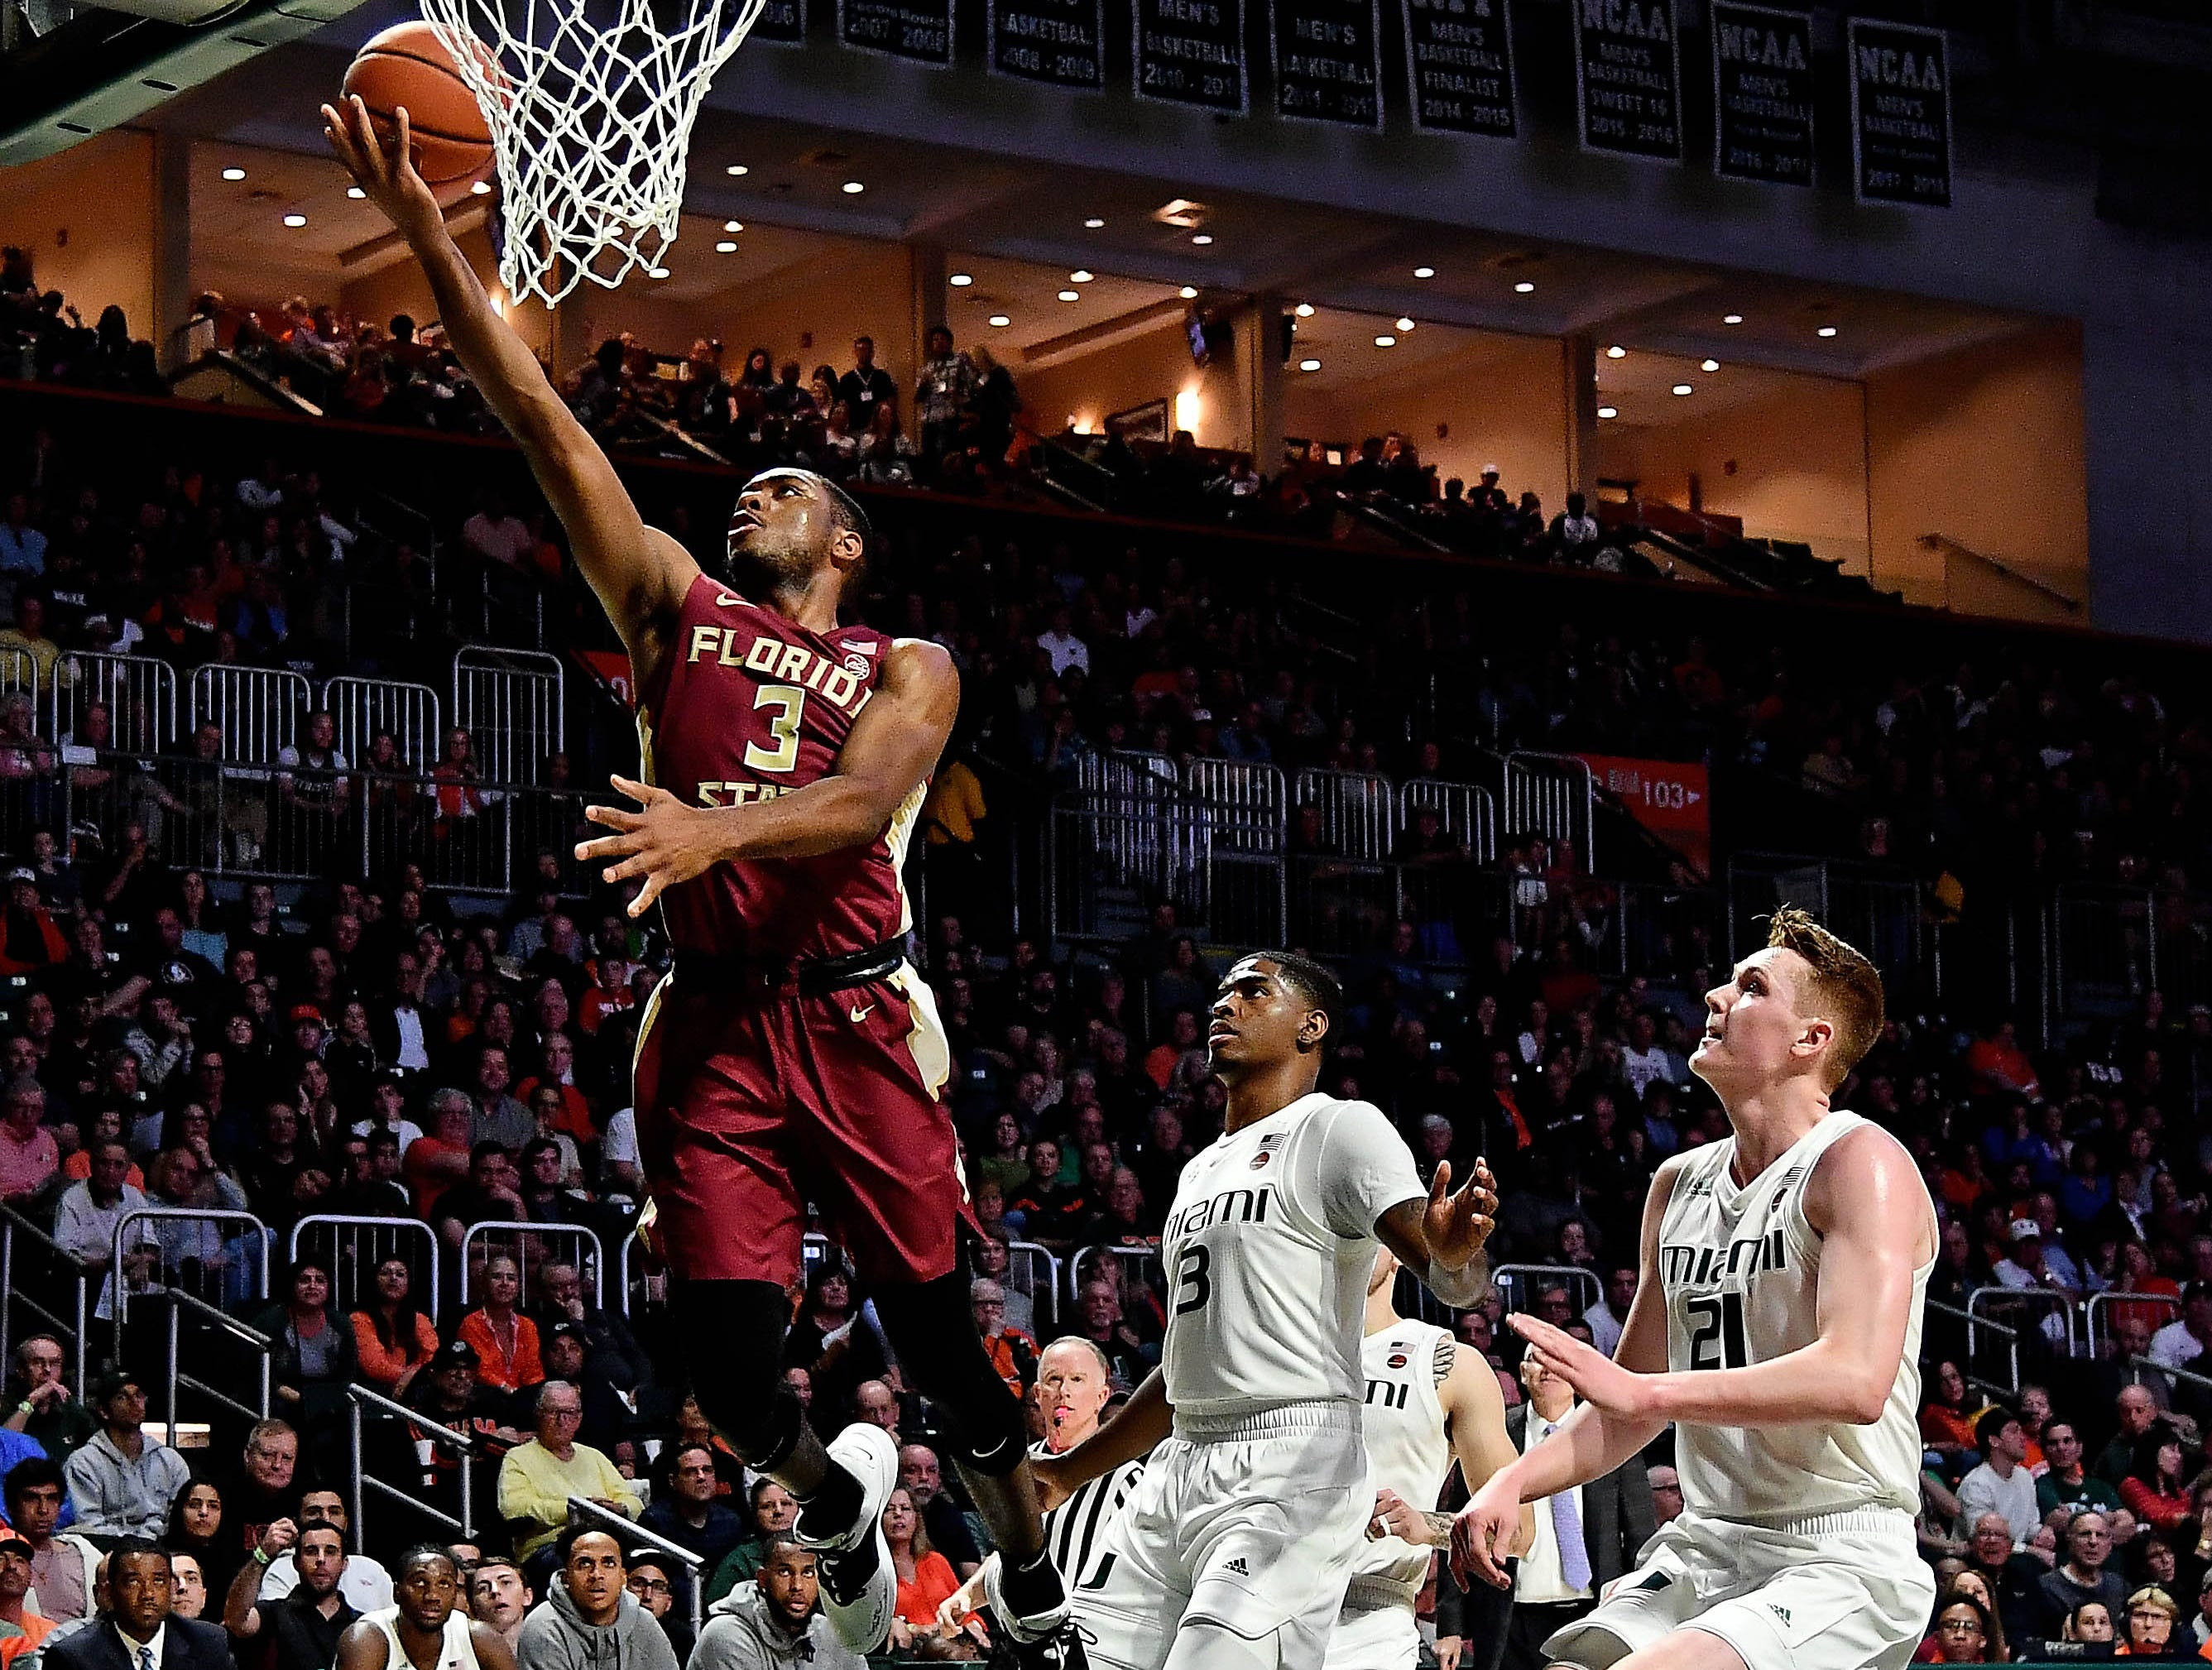 Jan 27, 2019; Coral Gables, FL, USA; Florida State Seminoles guard Trent Forrest (3) shoots the ball against the Miami Hurricanes during the first half at Watsco Center. Mandatory Credit: Jasen Vinlove-USA TODAY Sports